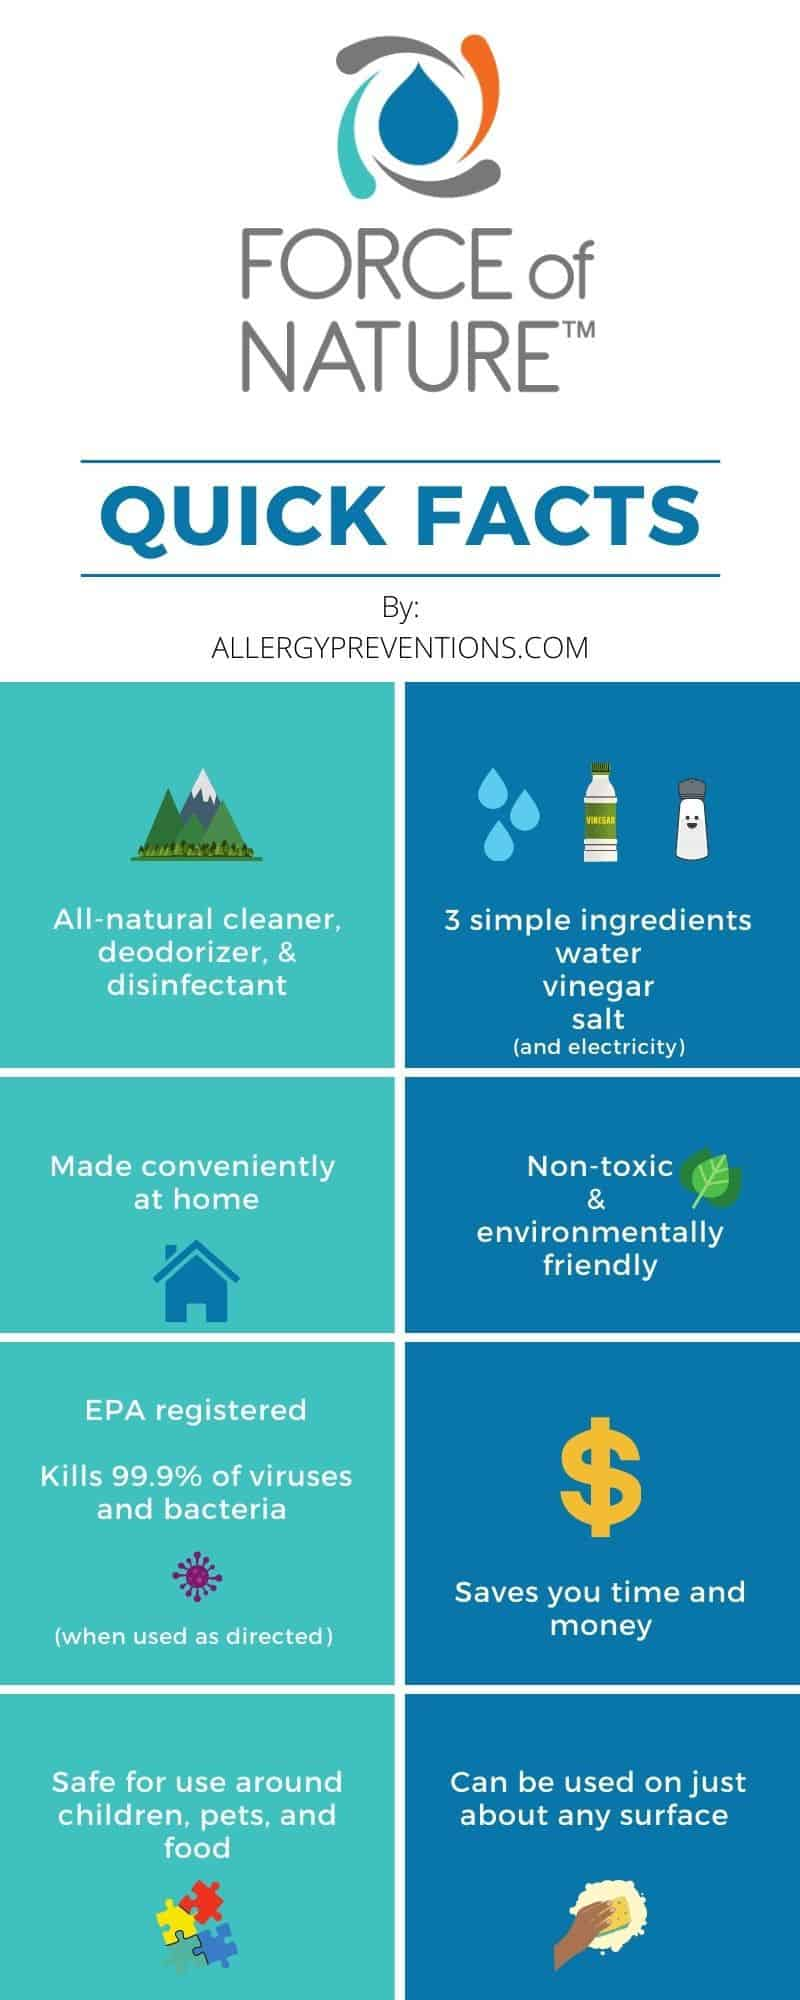 force-of-nature-cleaner-quick-facts-infographic